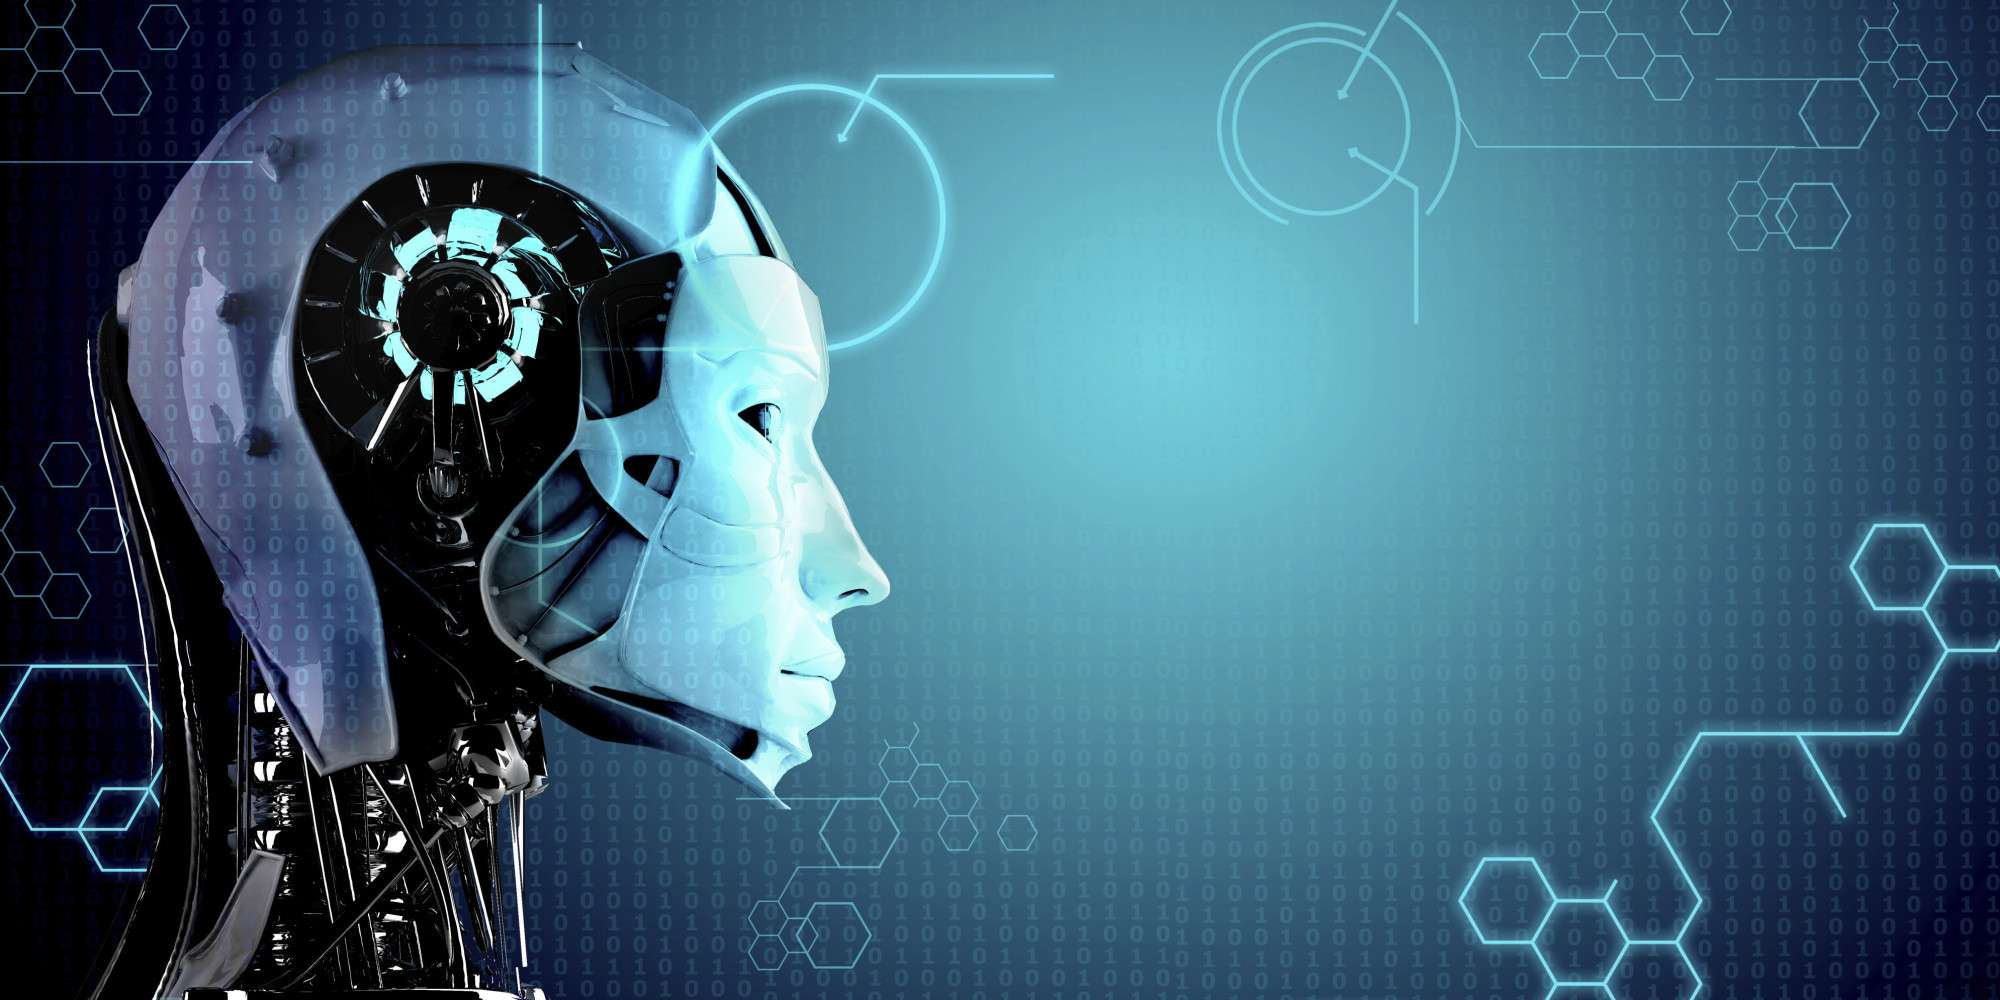 an analysis of the new computer technology in artificial intelligence use in medicine police and man Learn about robots and artificial intelligence and ai a man-made machine instead of directing every action using a central computer, the robots control lower.